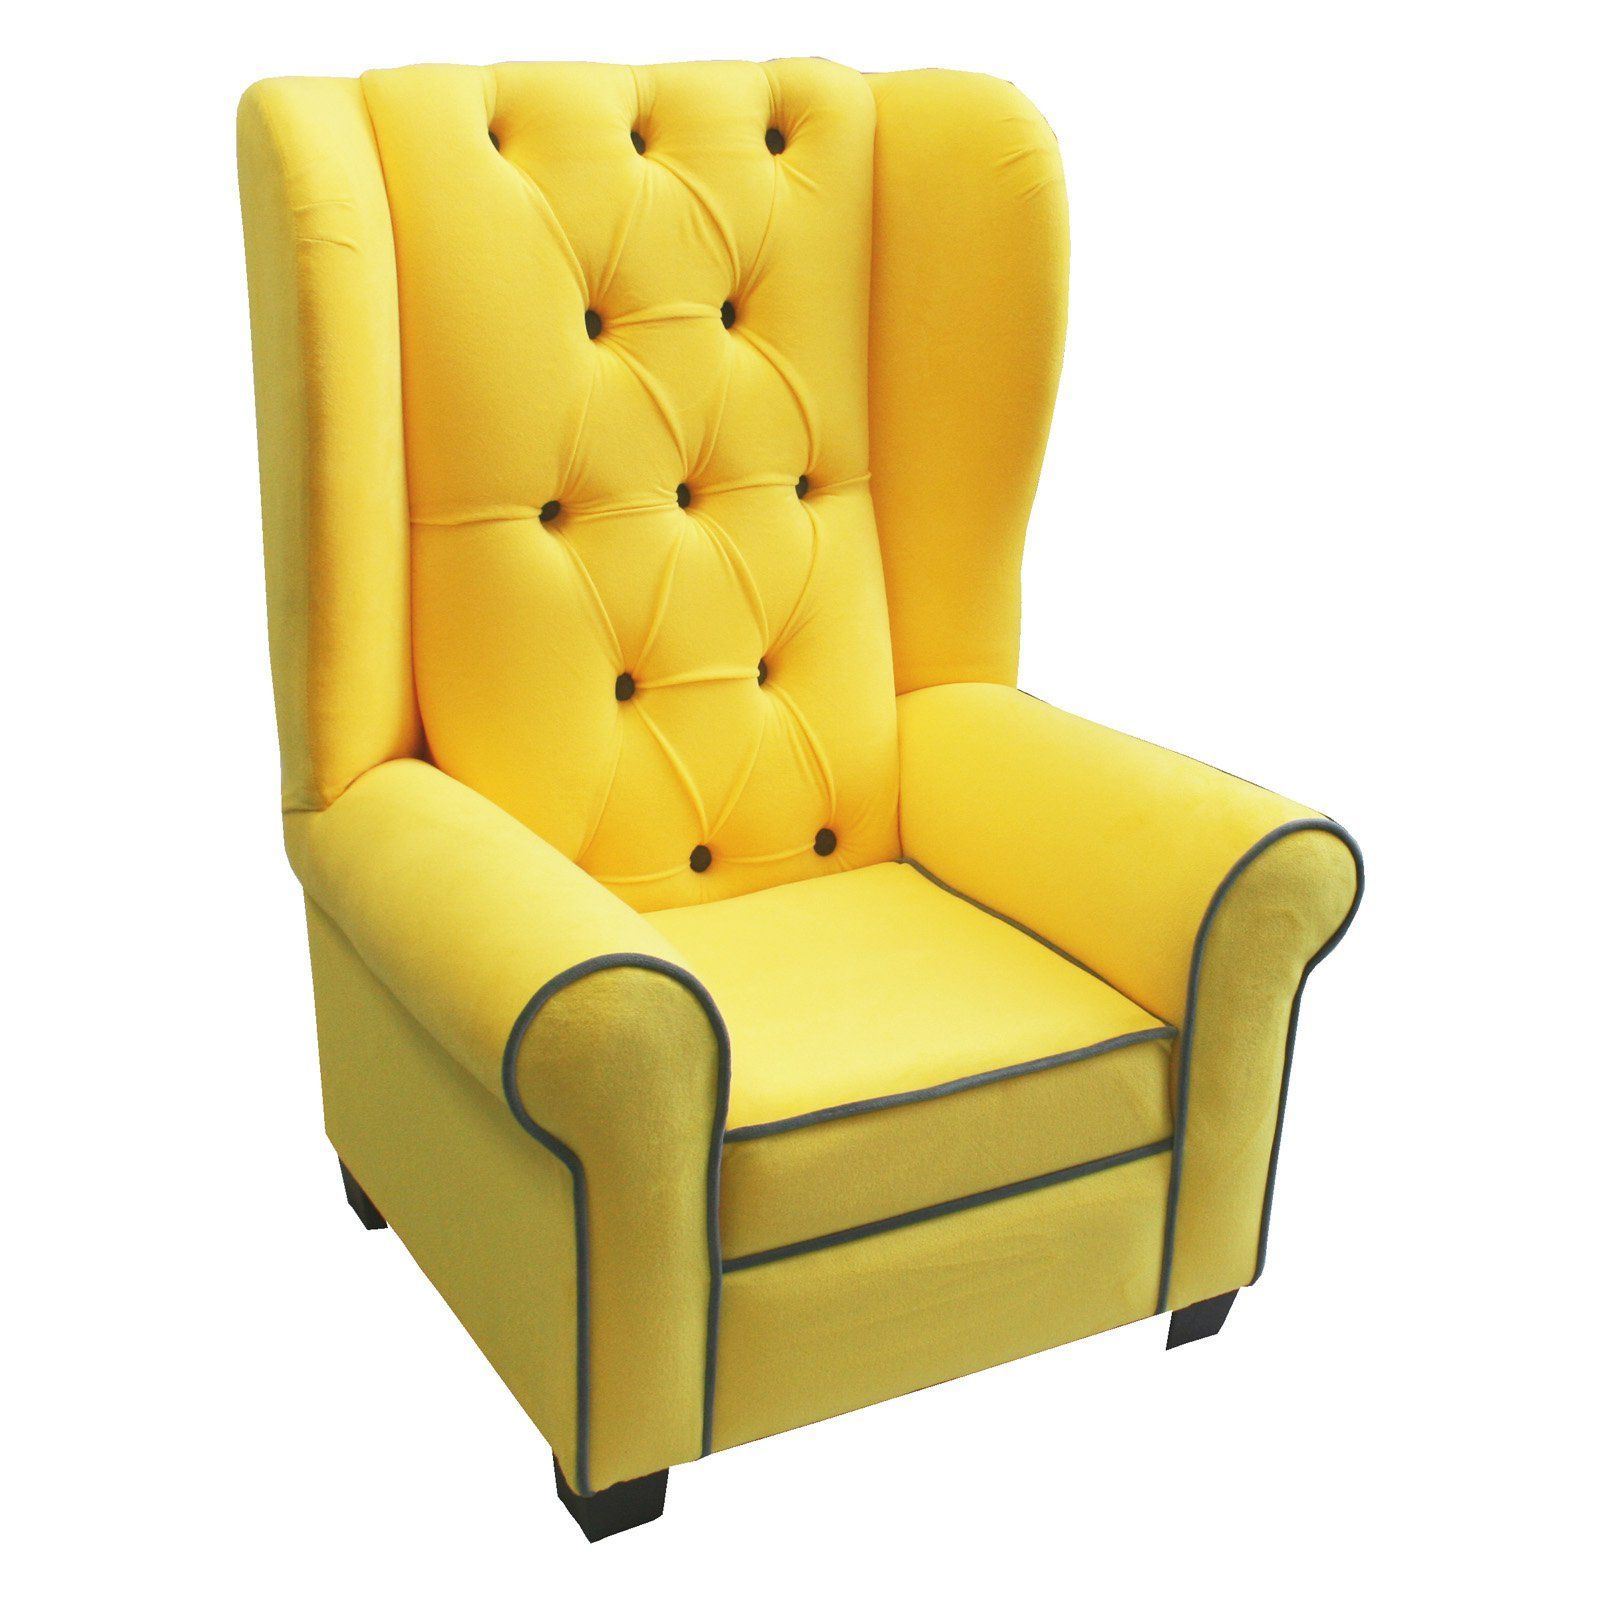 Beau Yellow Accent Chair   Http://www.genwhymovie.com/yellow Accent Chair/ :  #HomeFurniture For Small Areas, Accent Chair Can Save Space Without  Removing Square ...